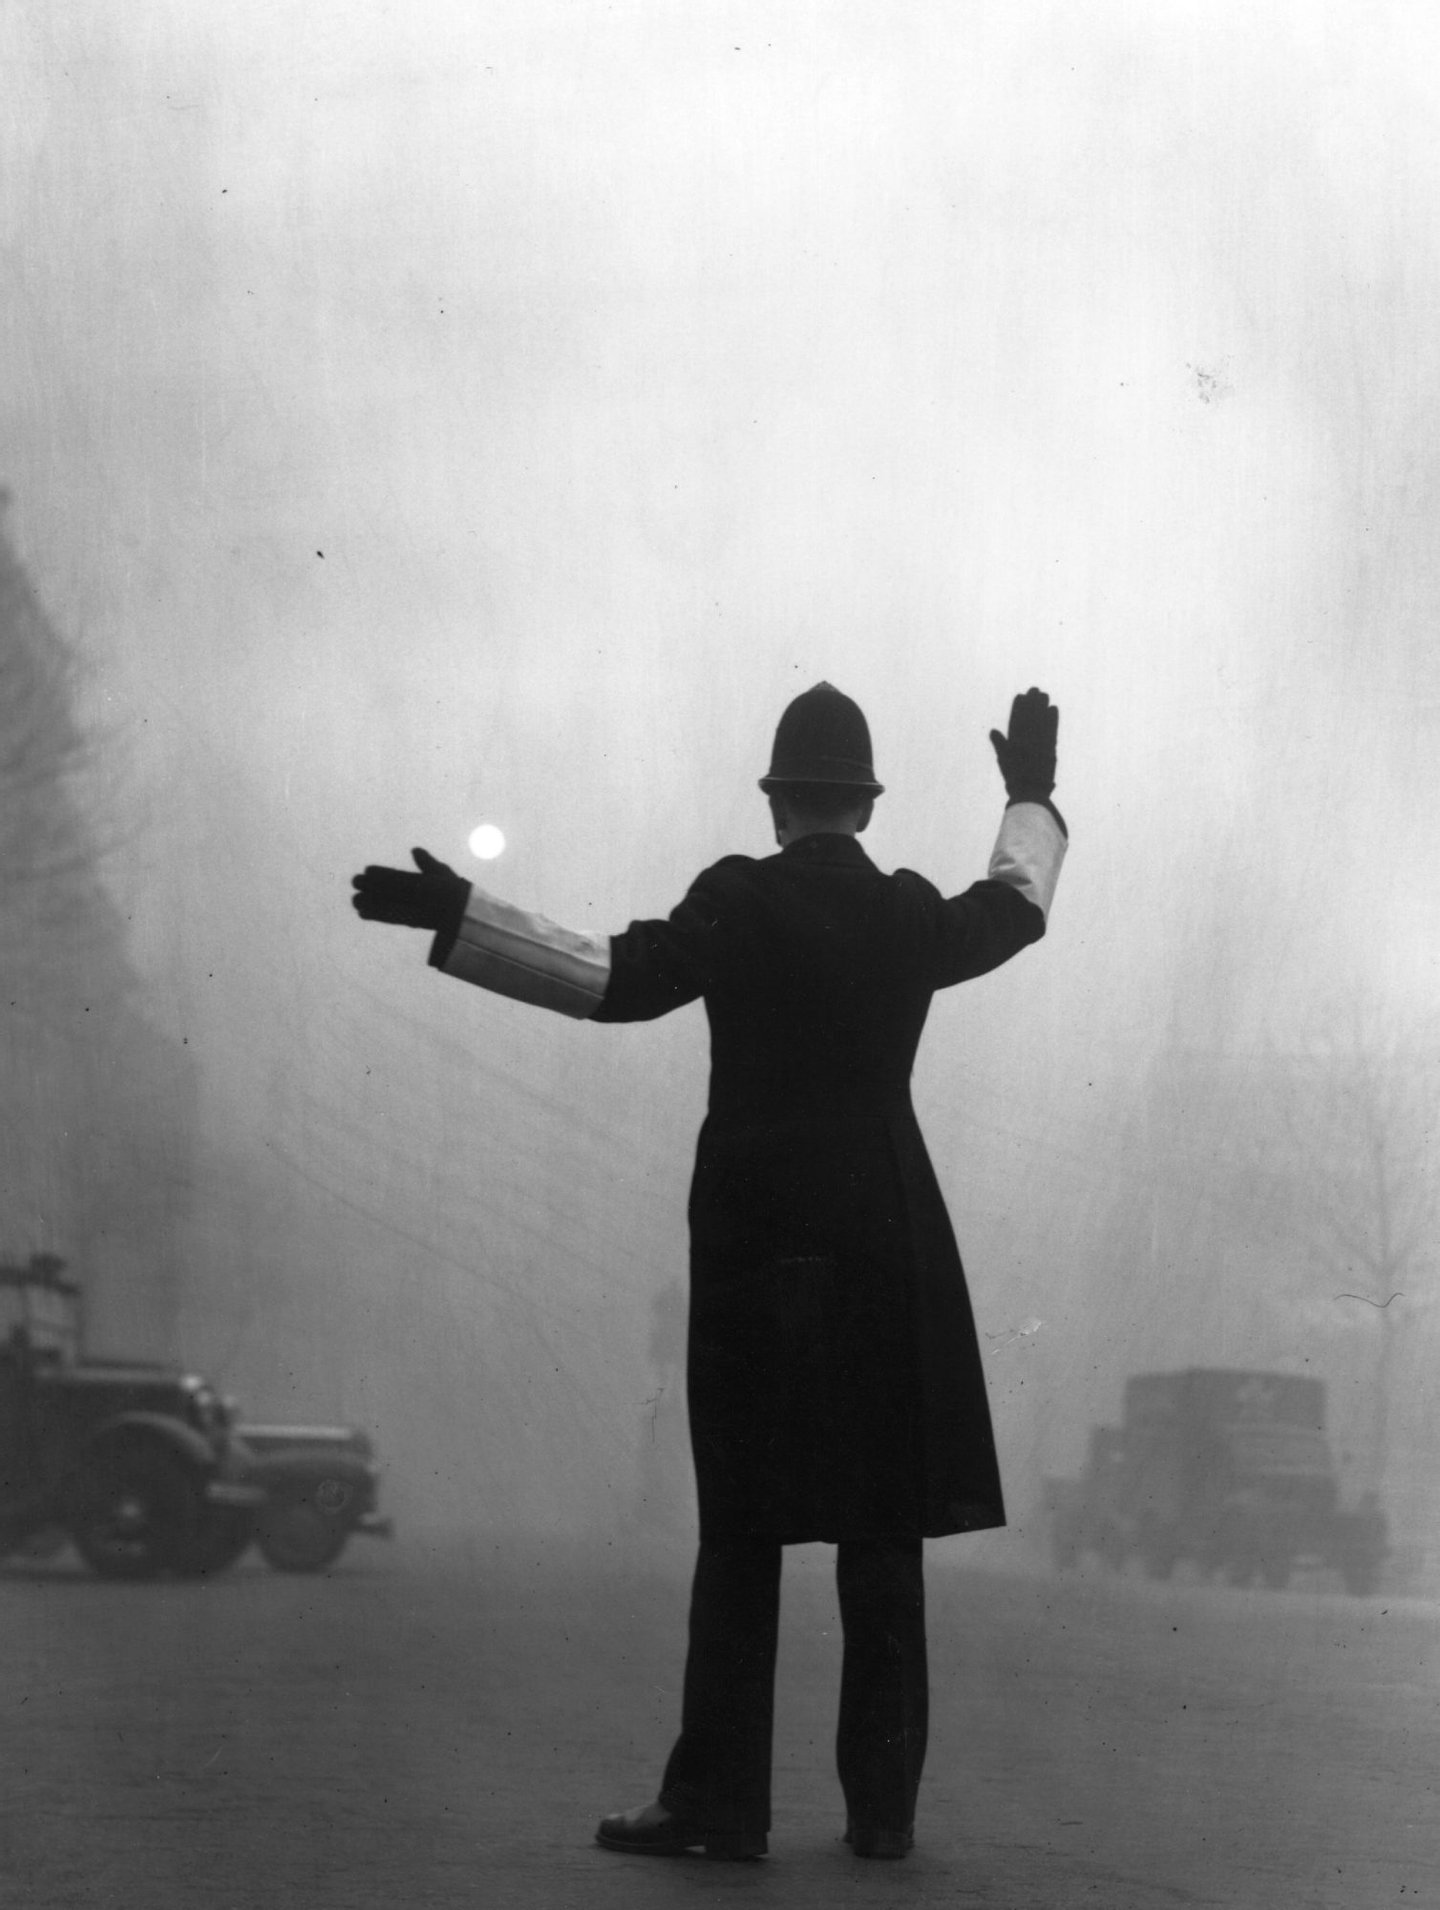 A policeman on traffic duty on a foggy day in Fleet Street, London. (Photo by Hulton Archive/Getty Images)